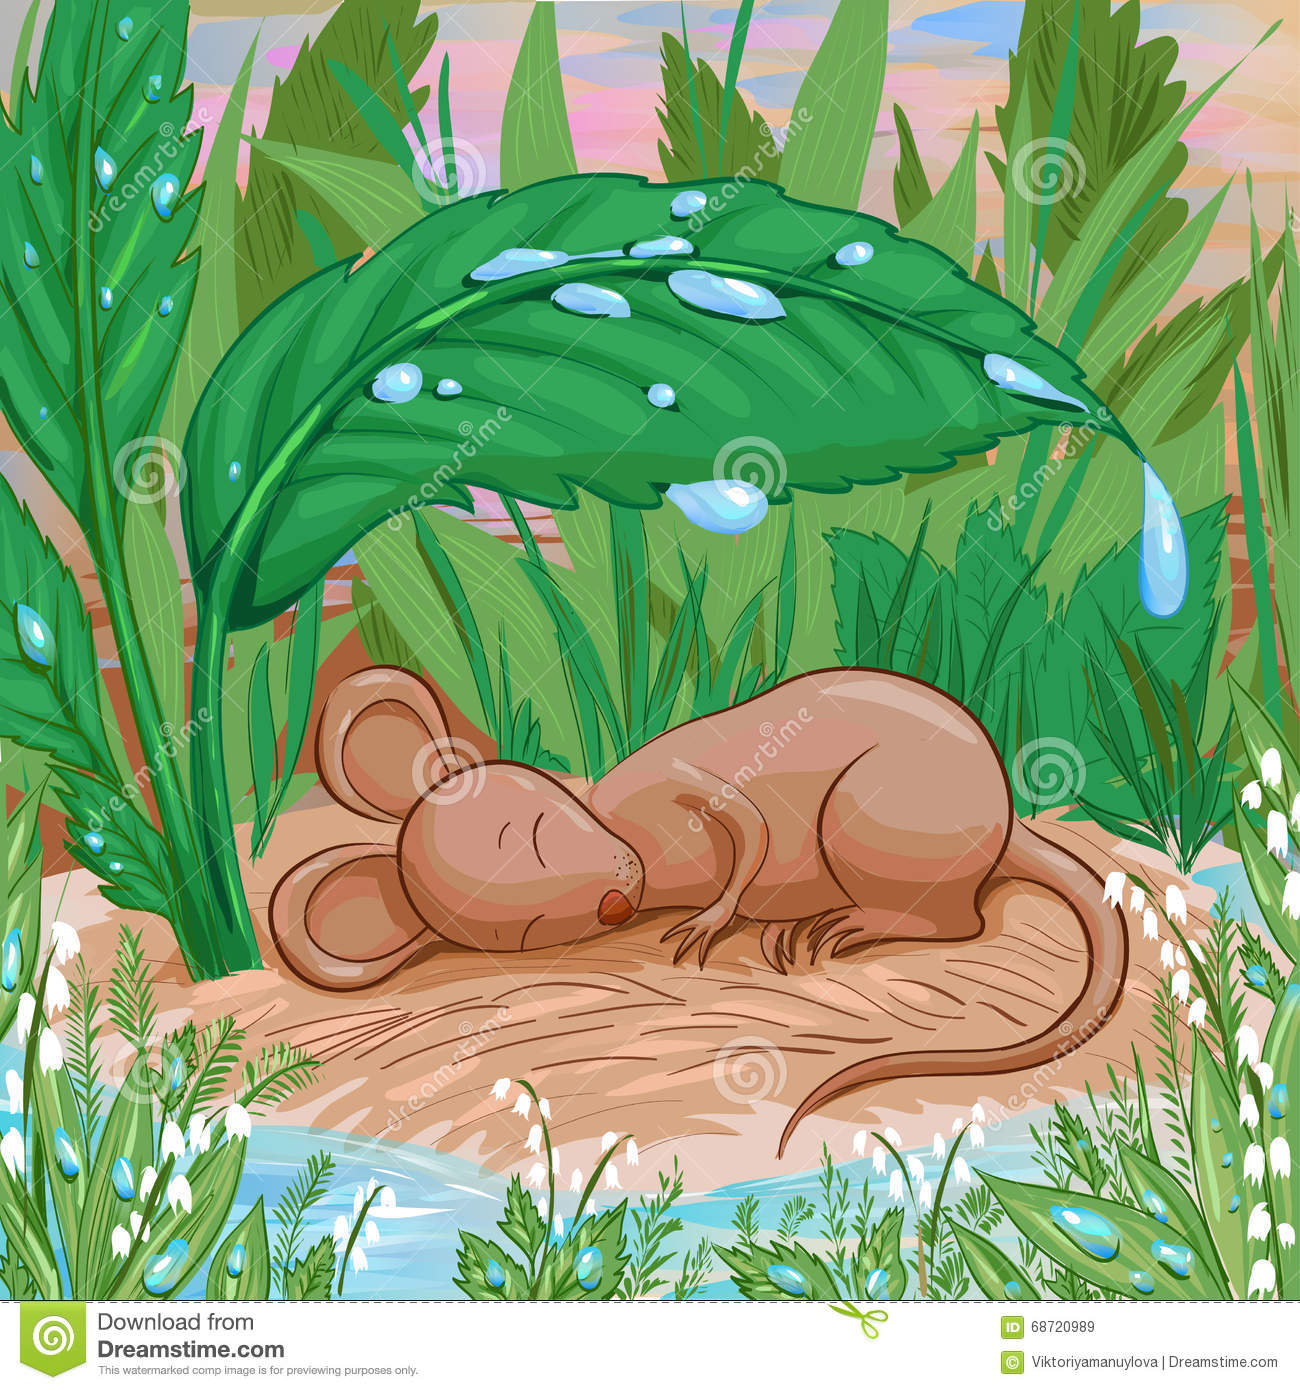 Mouse Is Sleeping On A Piece Of Dry Land Under Rain. Stock Vector.